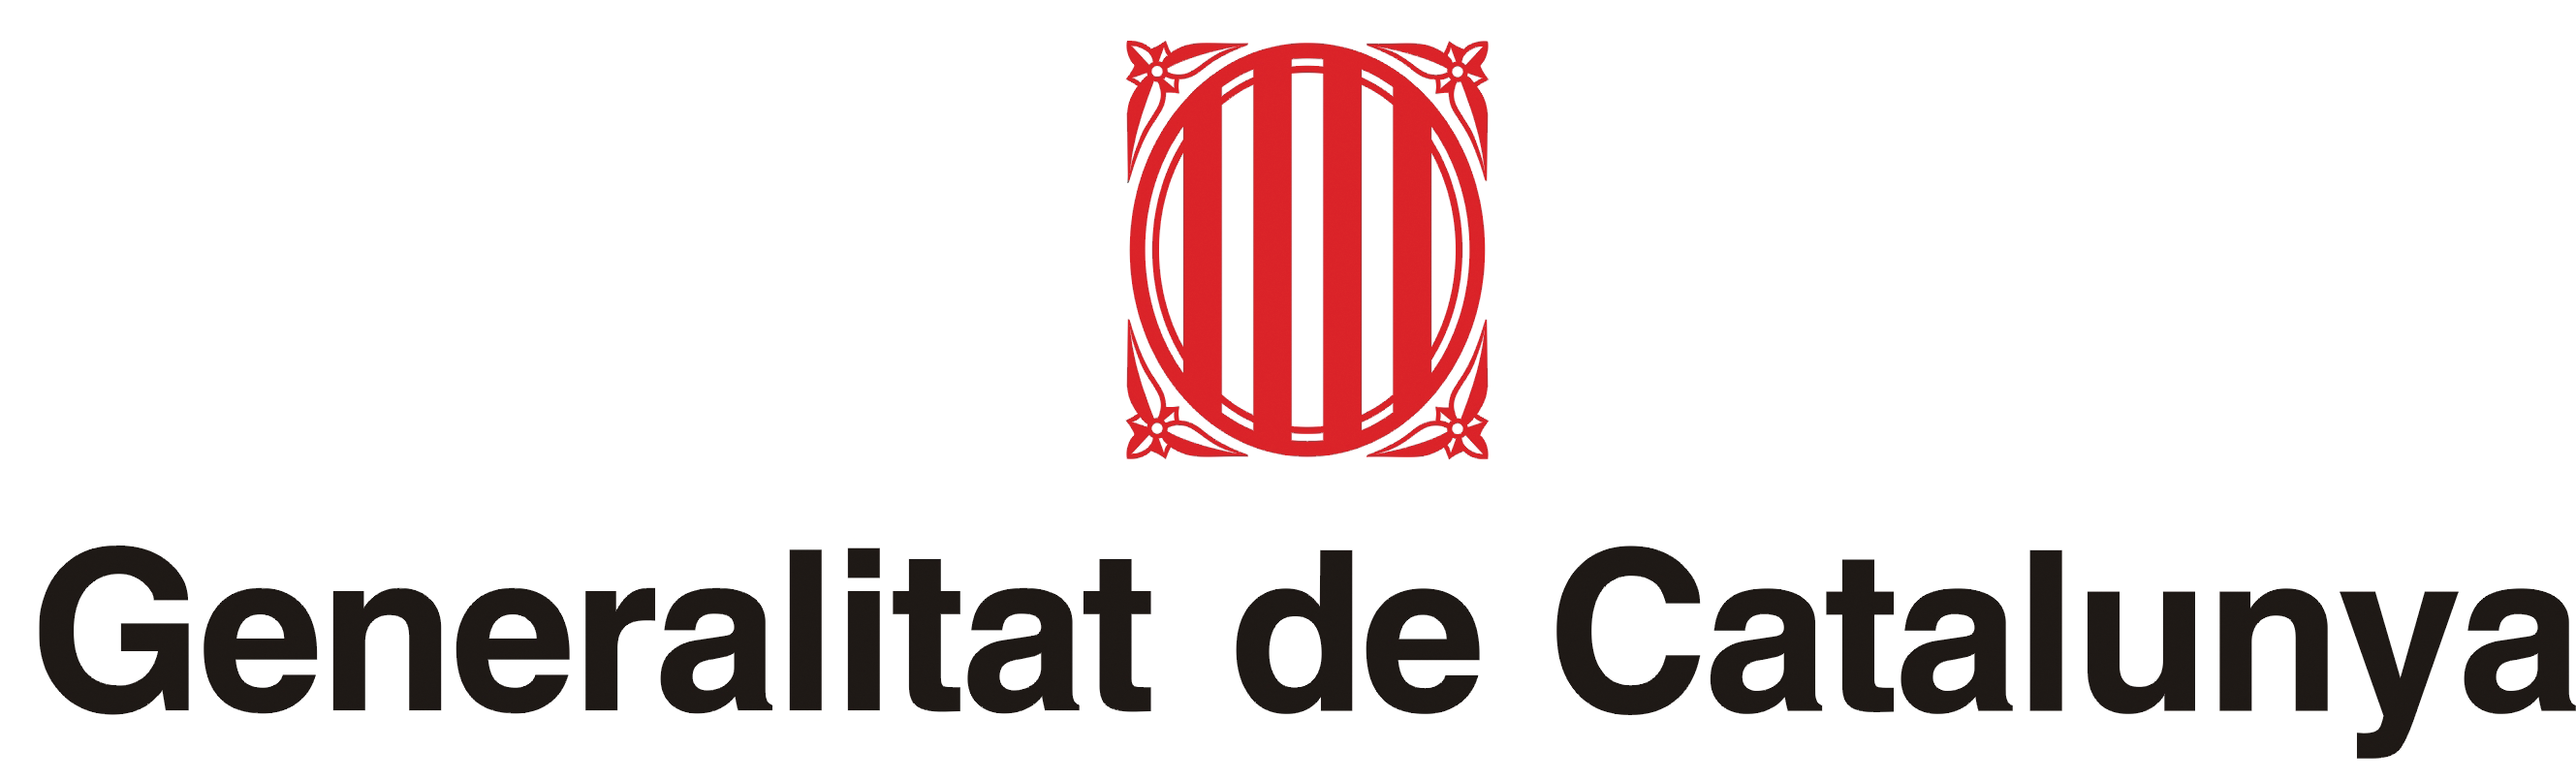 UTC_logo_briefpapier